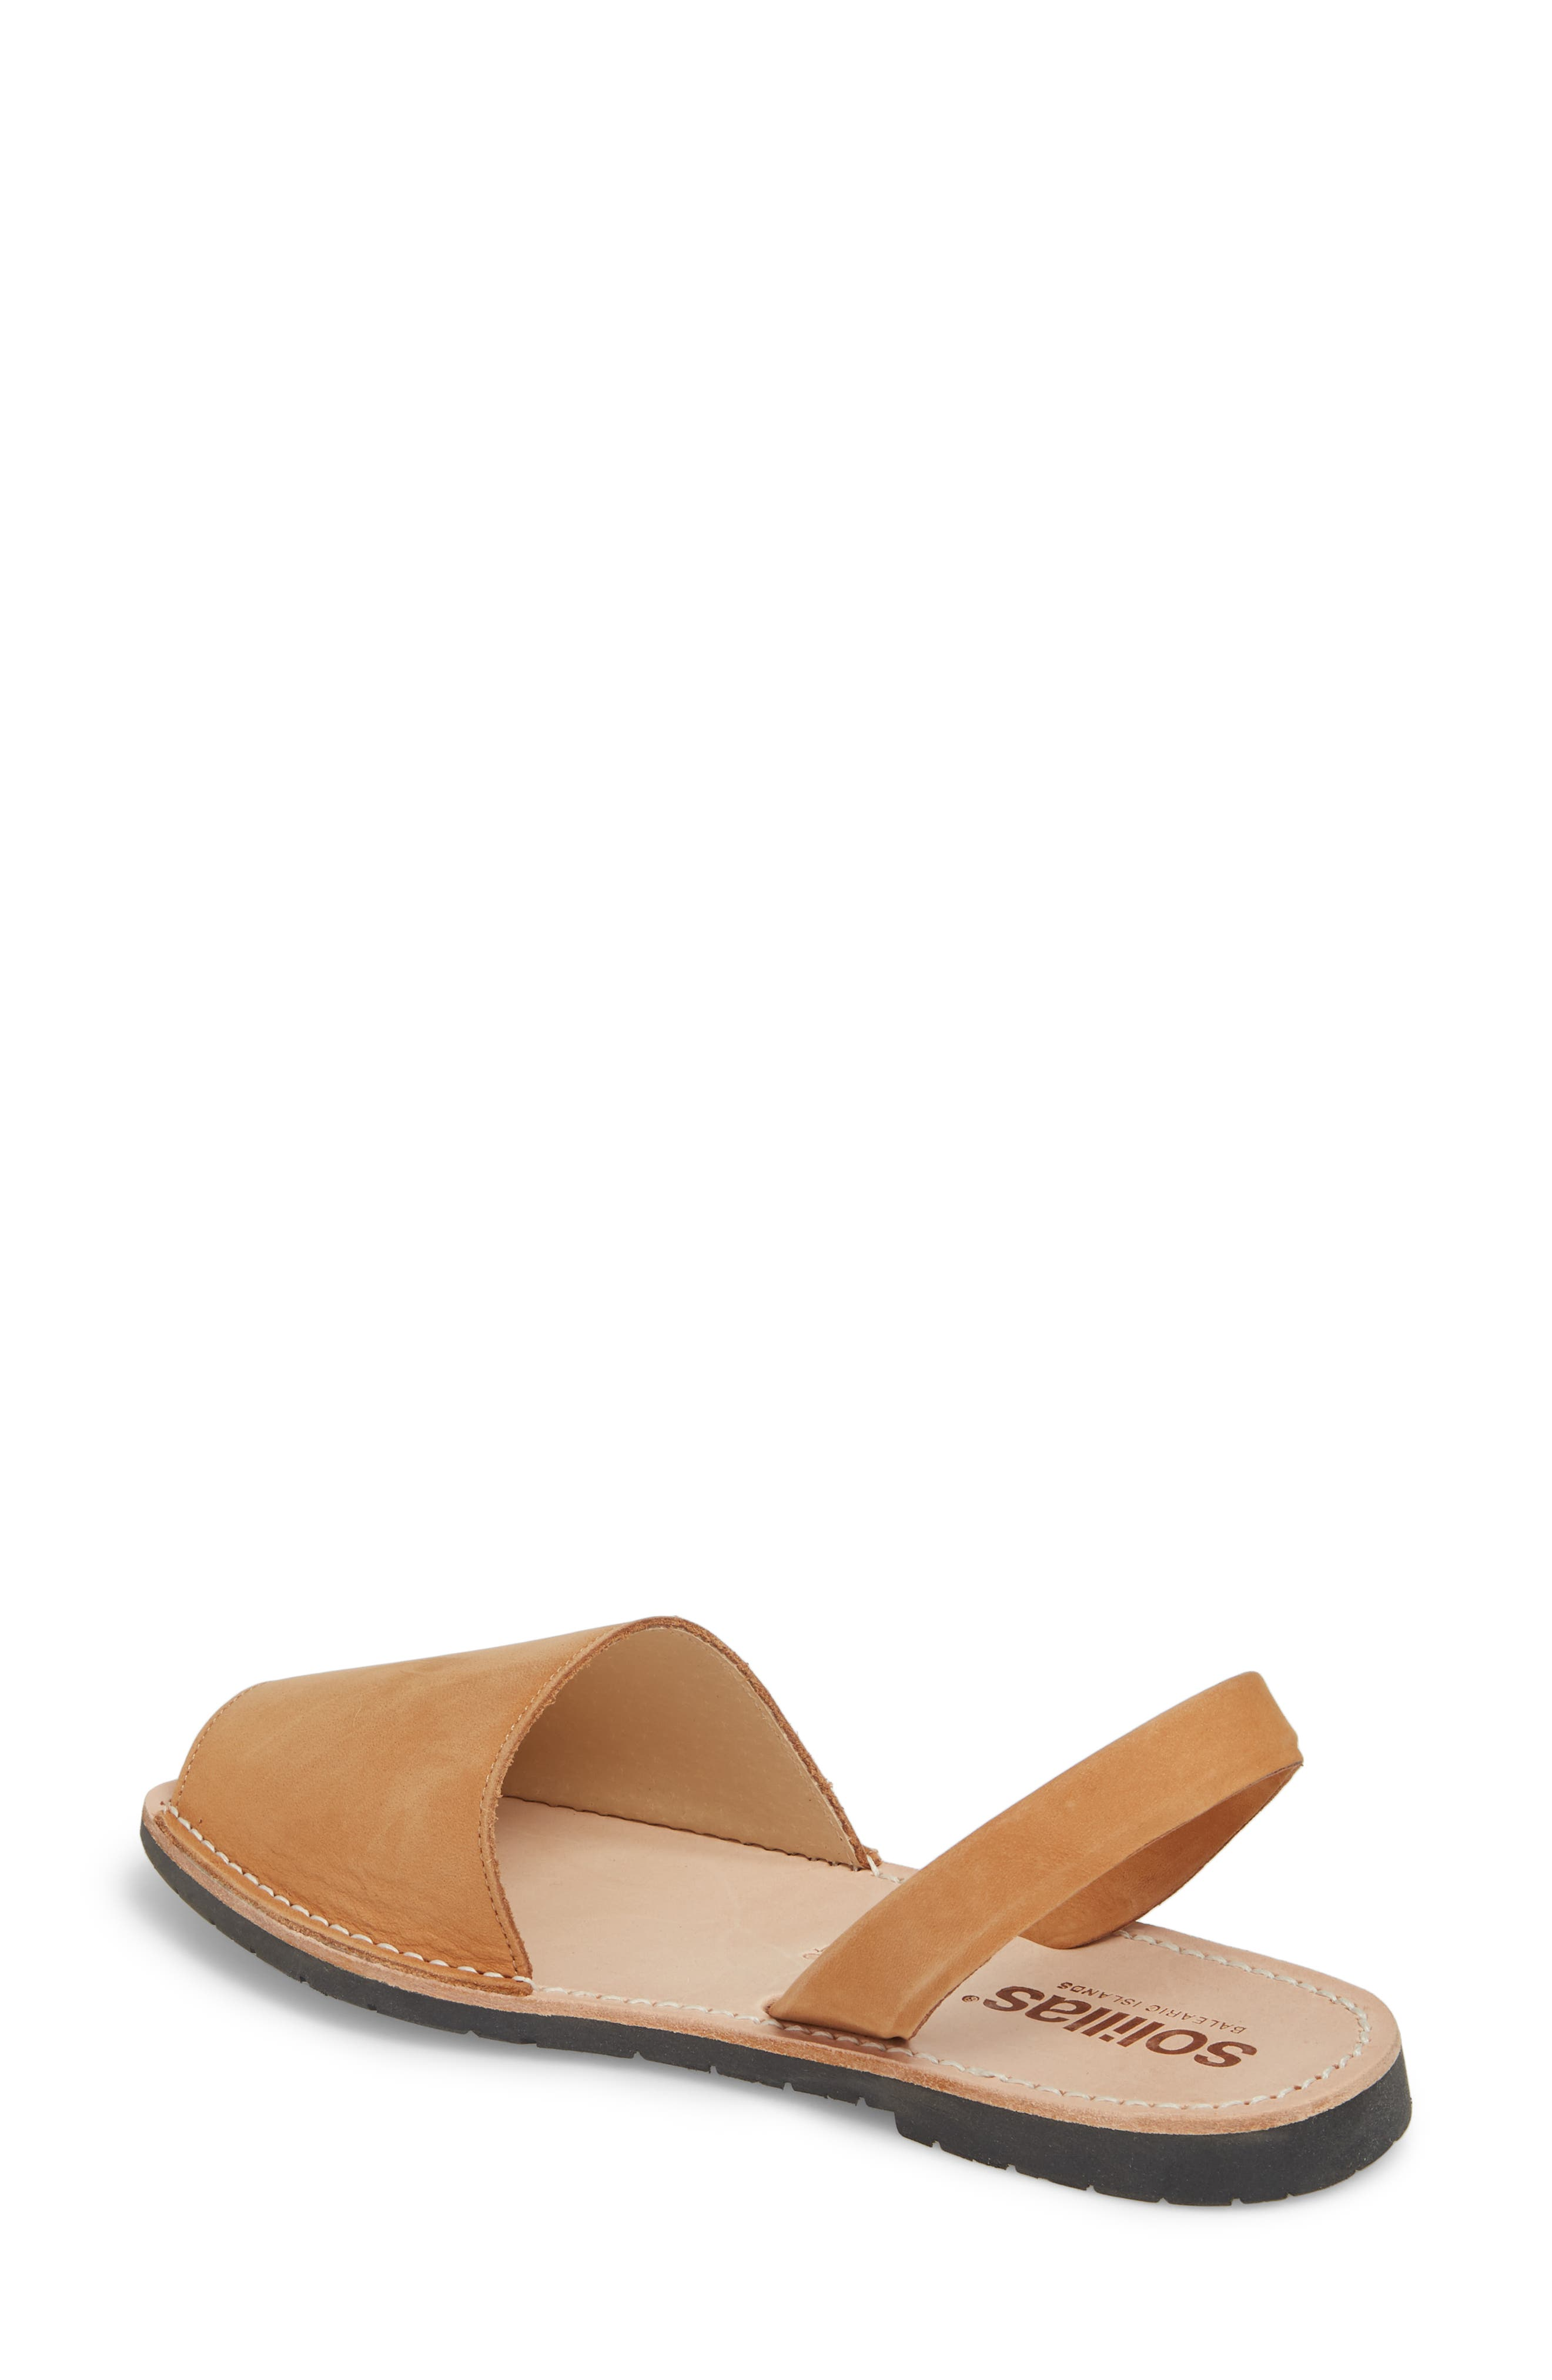 Flat Sandal,                             Alternate thumbnail 2, color,                             Tan